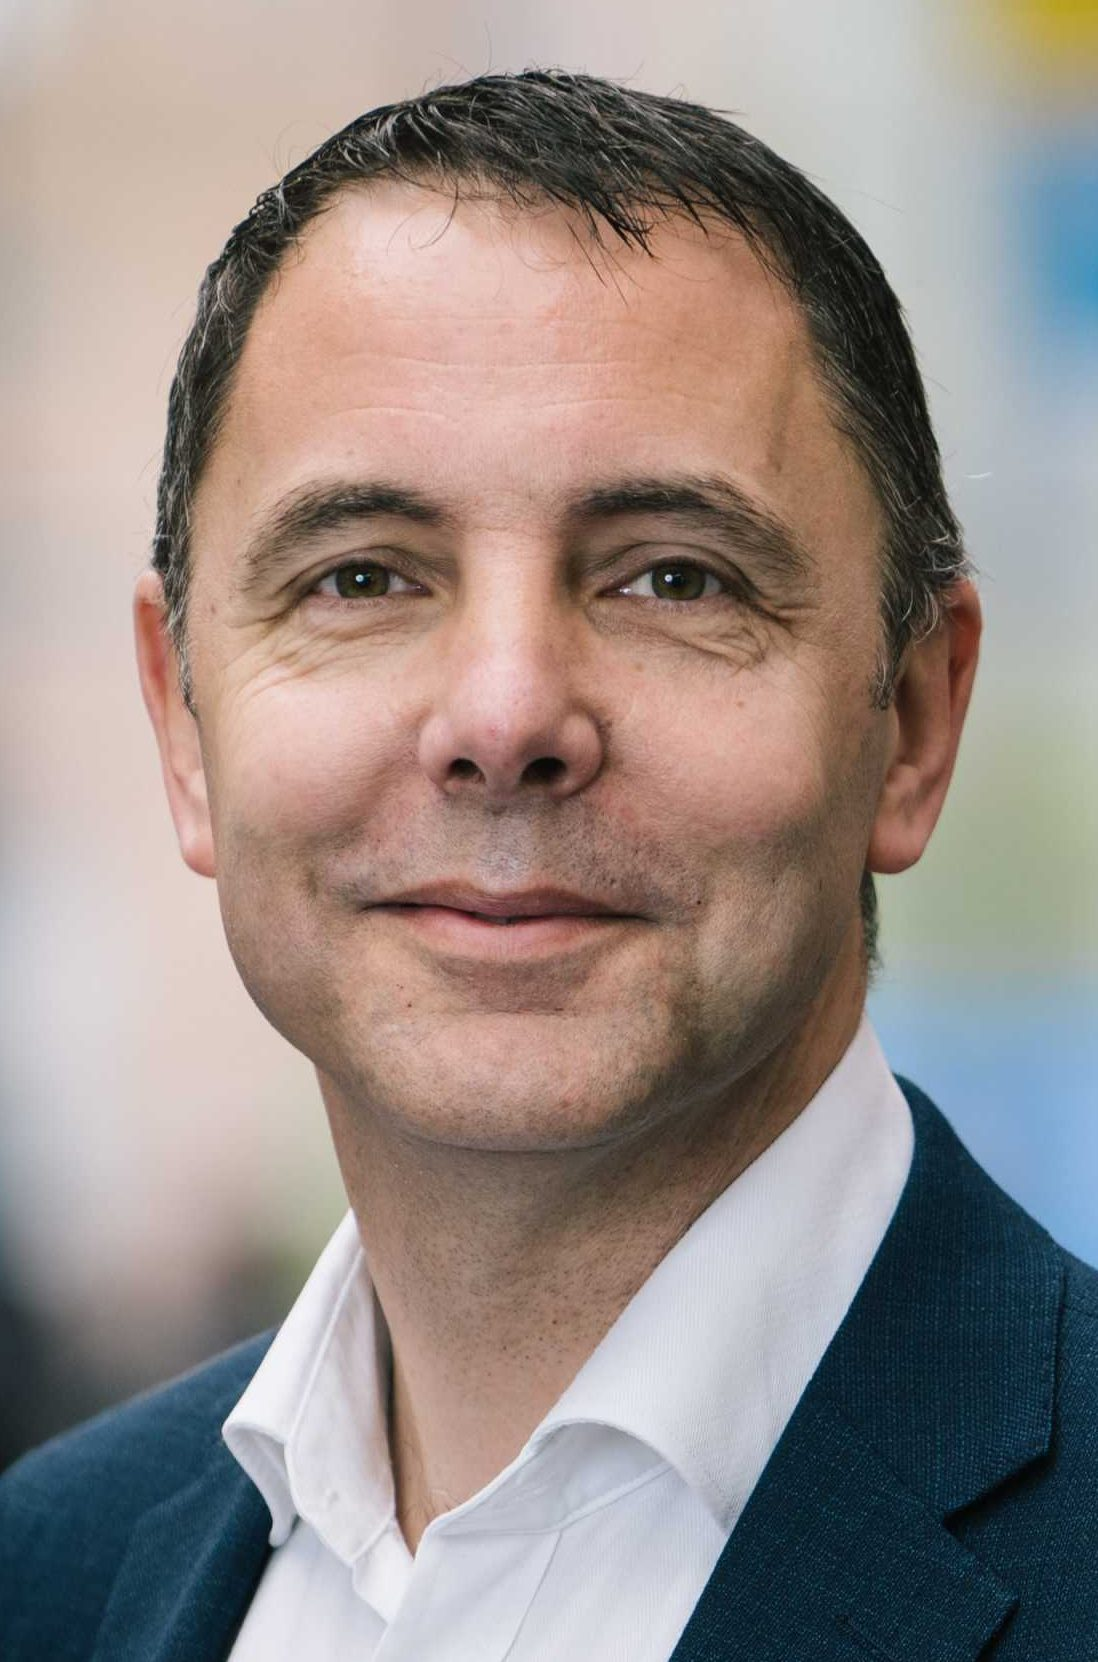 May 2020 - Brian Holliday, managing director of Siemens UK Digital Industries